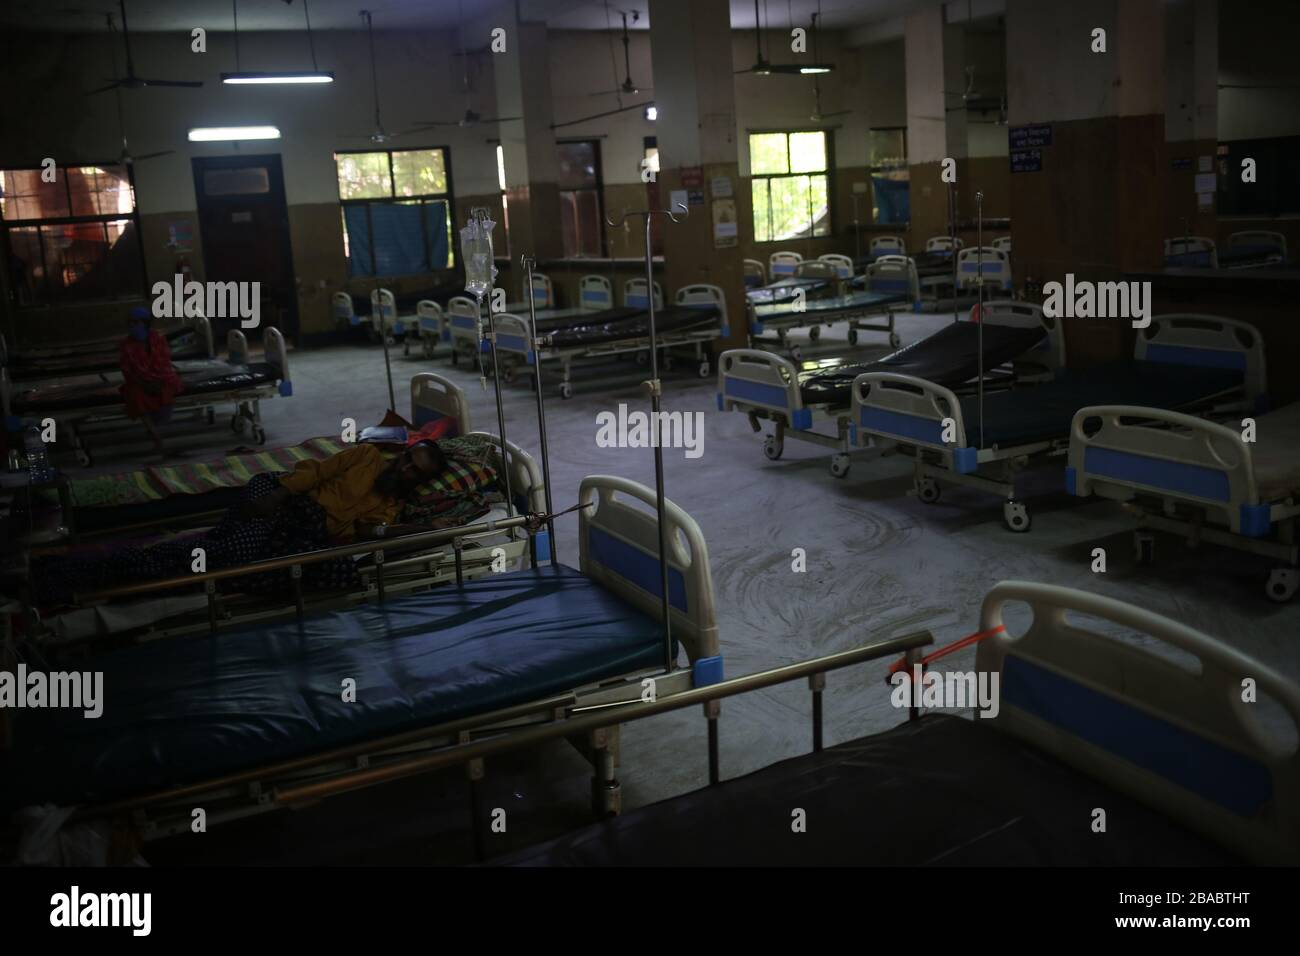 Dhaka, Bangladesh. 26th Mar, 2020. Fear of amid spread of COVID-19 left Shaheed Suhrowardy Medical College almost empty. Total 44 people have been infected by Covid-19 in Bangladesh, of whom 5 died confirmed by IEDCR. (Photo by Md. Rakibul Hasan/Pacific Press) Credit: Pacific Press Agency/Alamy Live News Stock Photo